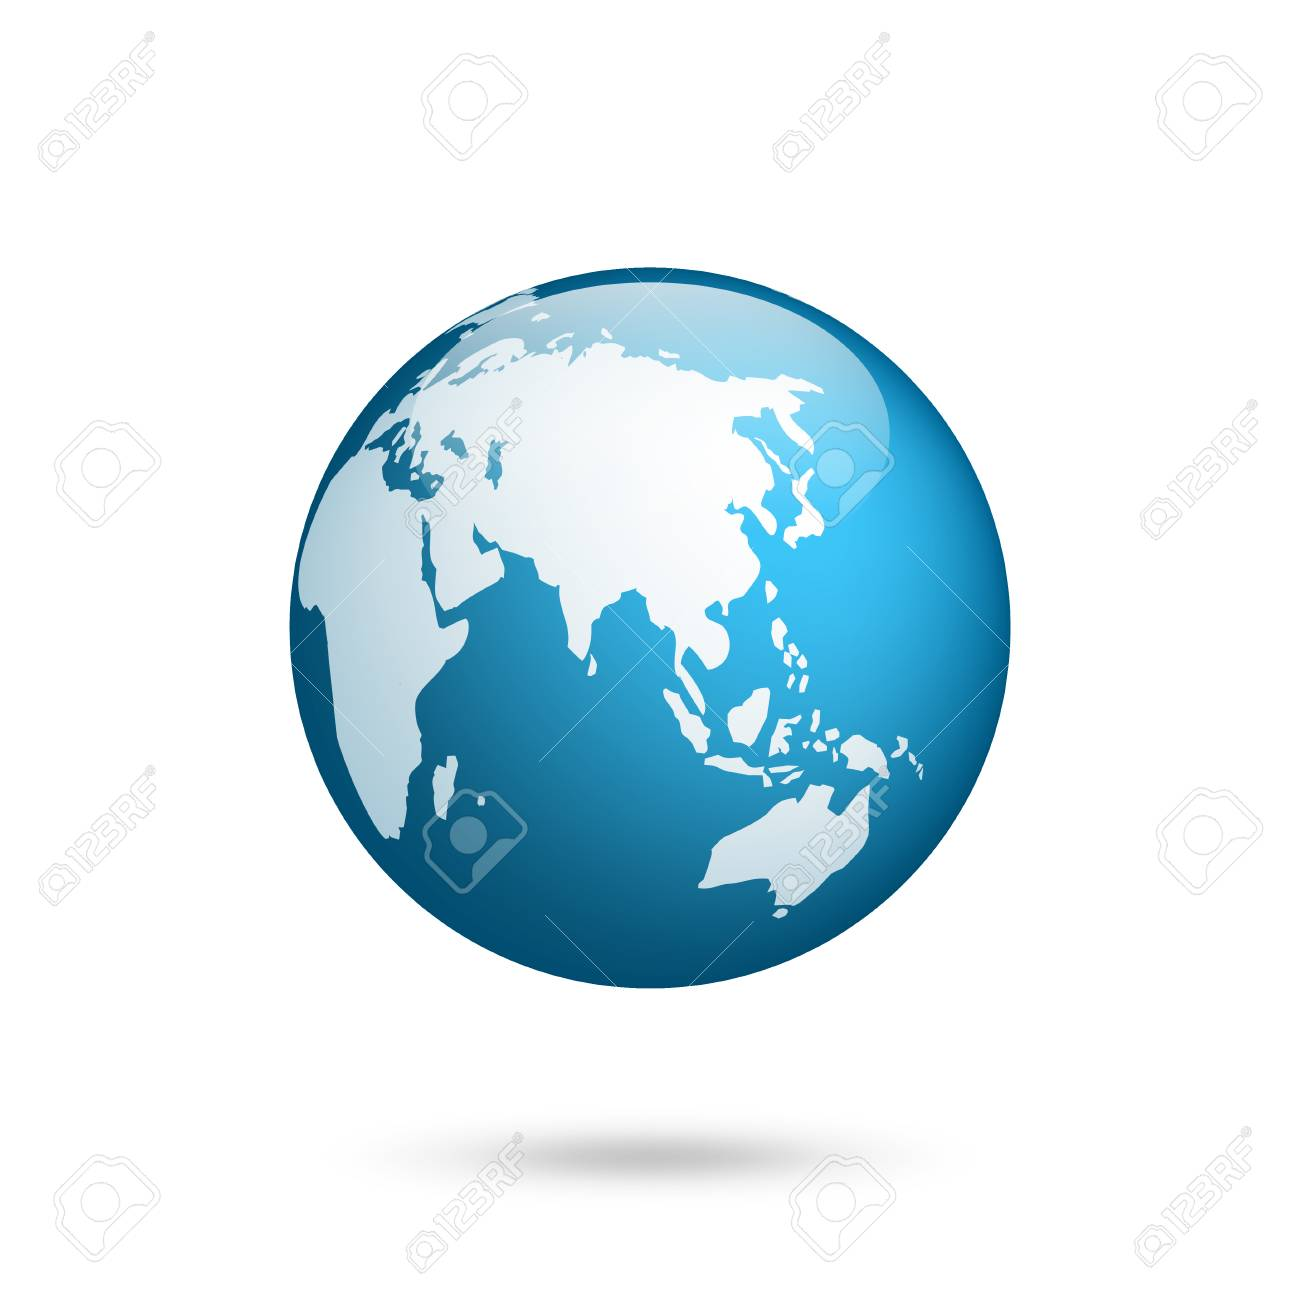 Australia Map Globe.Earth Globe World Map Set Planet With Continents Africa Asia